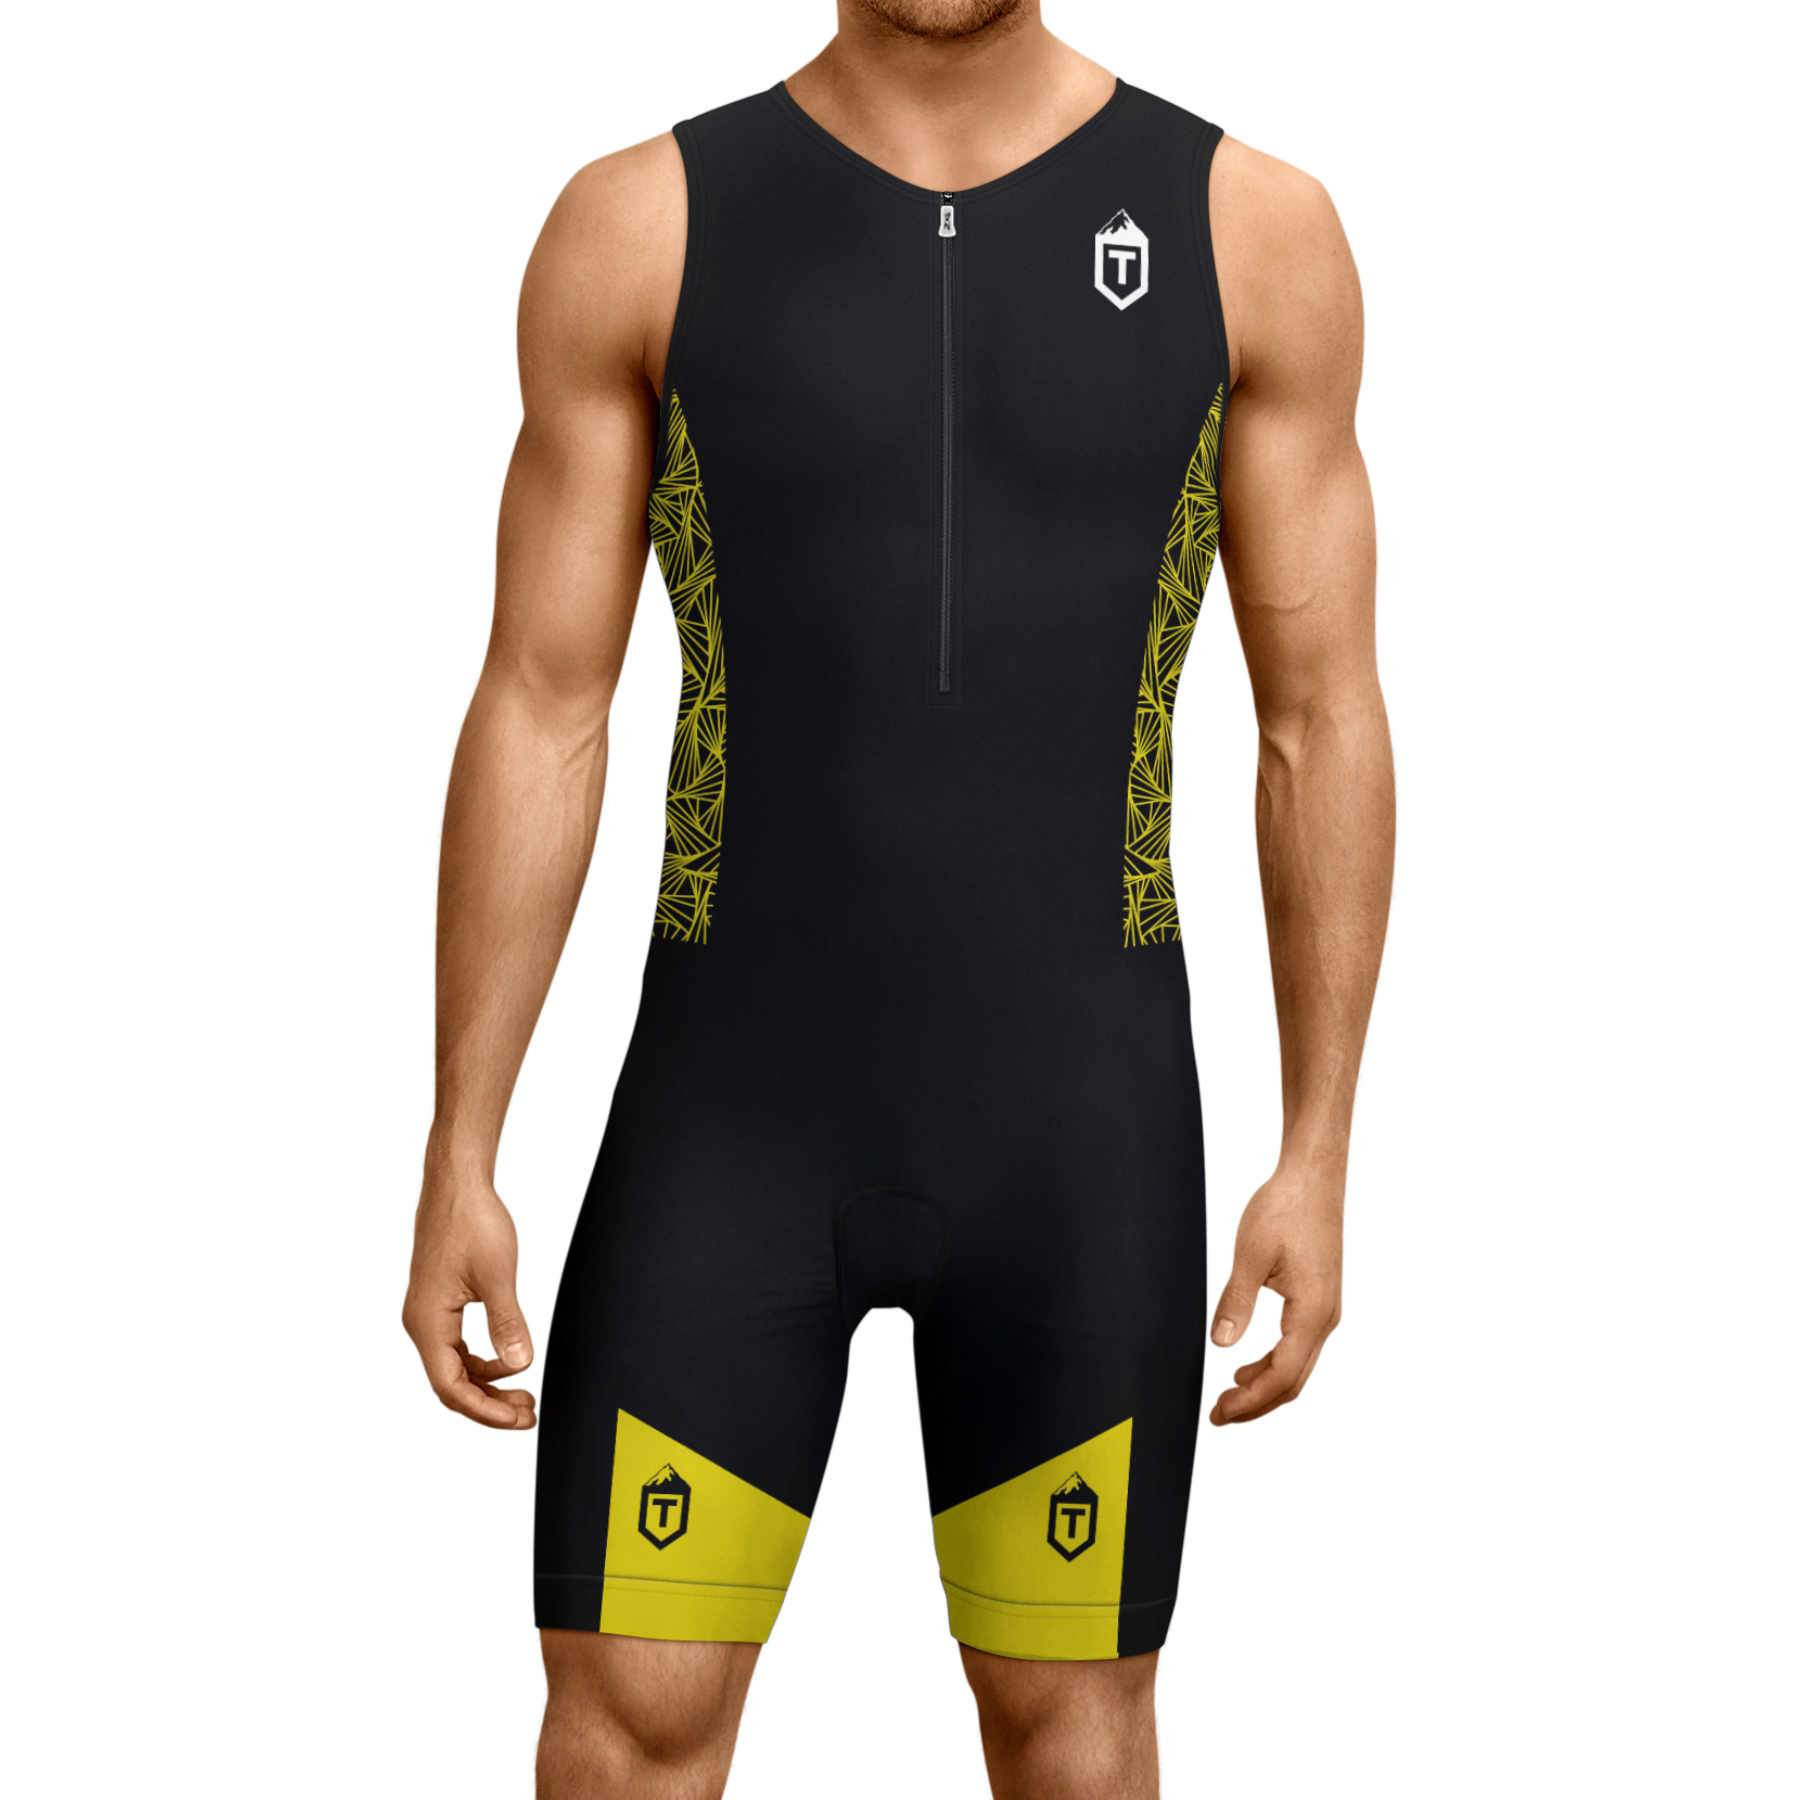 Triangles Tri Suit - The Tempests Store